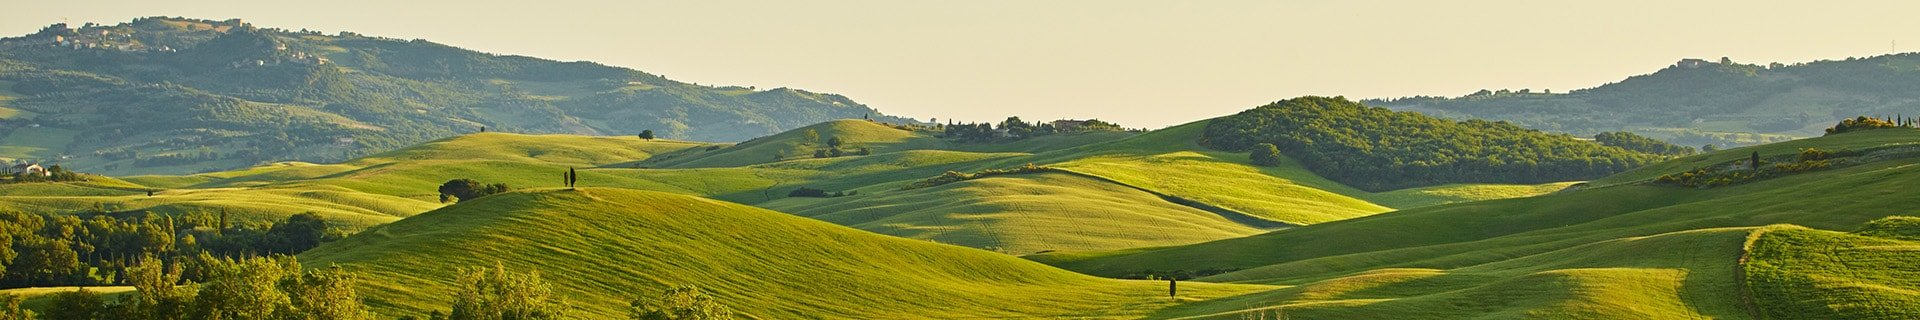 Green farmland and forests on rolling hills